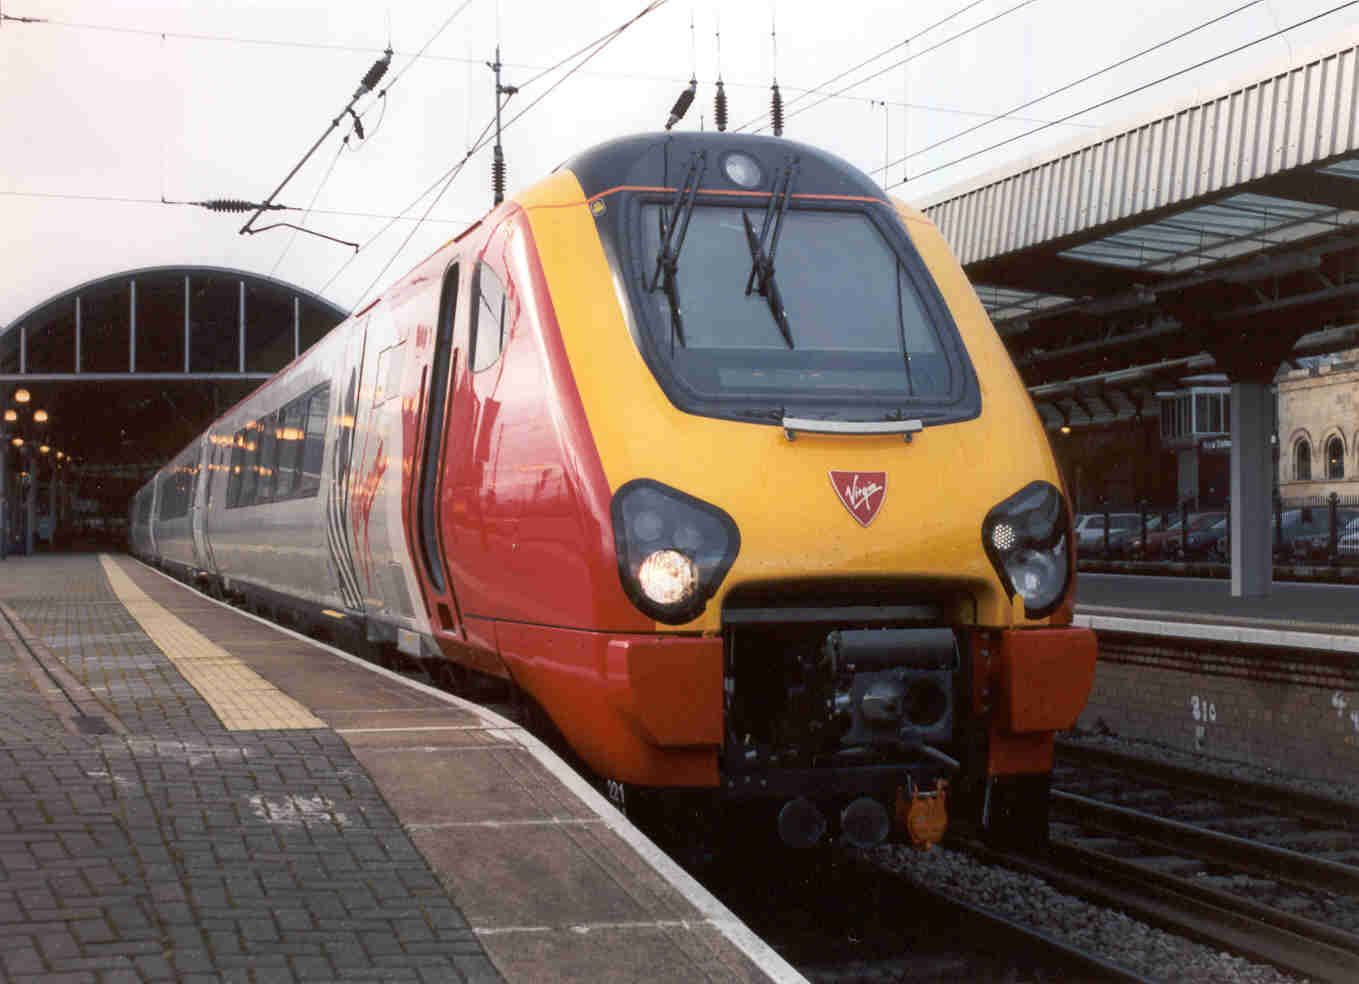 Image showing 221114 at Newcastle station after a run from Crofton sometime in March 2002